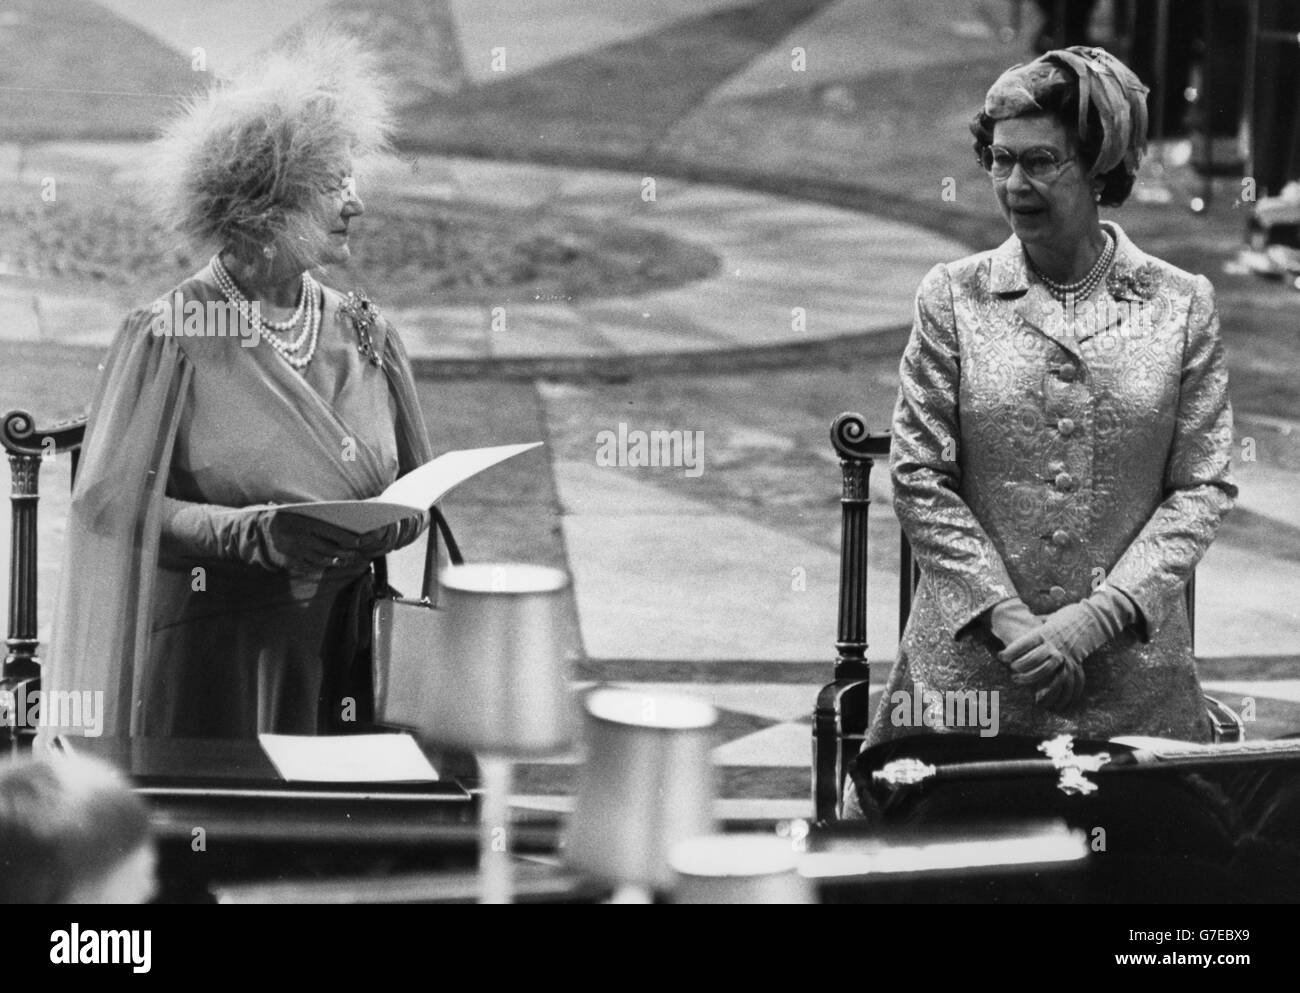 Royalty - Queen Mother's 80th Birthday - St Paul's Cathedral, London - Stock Image